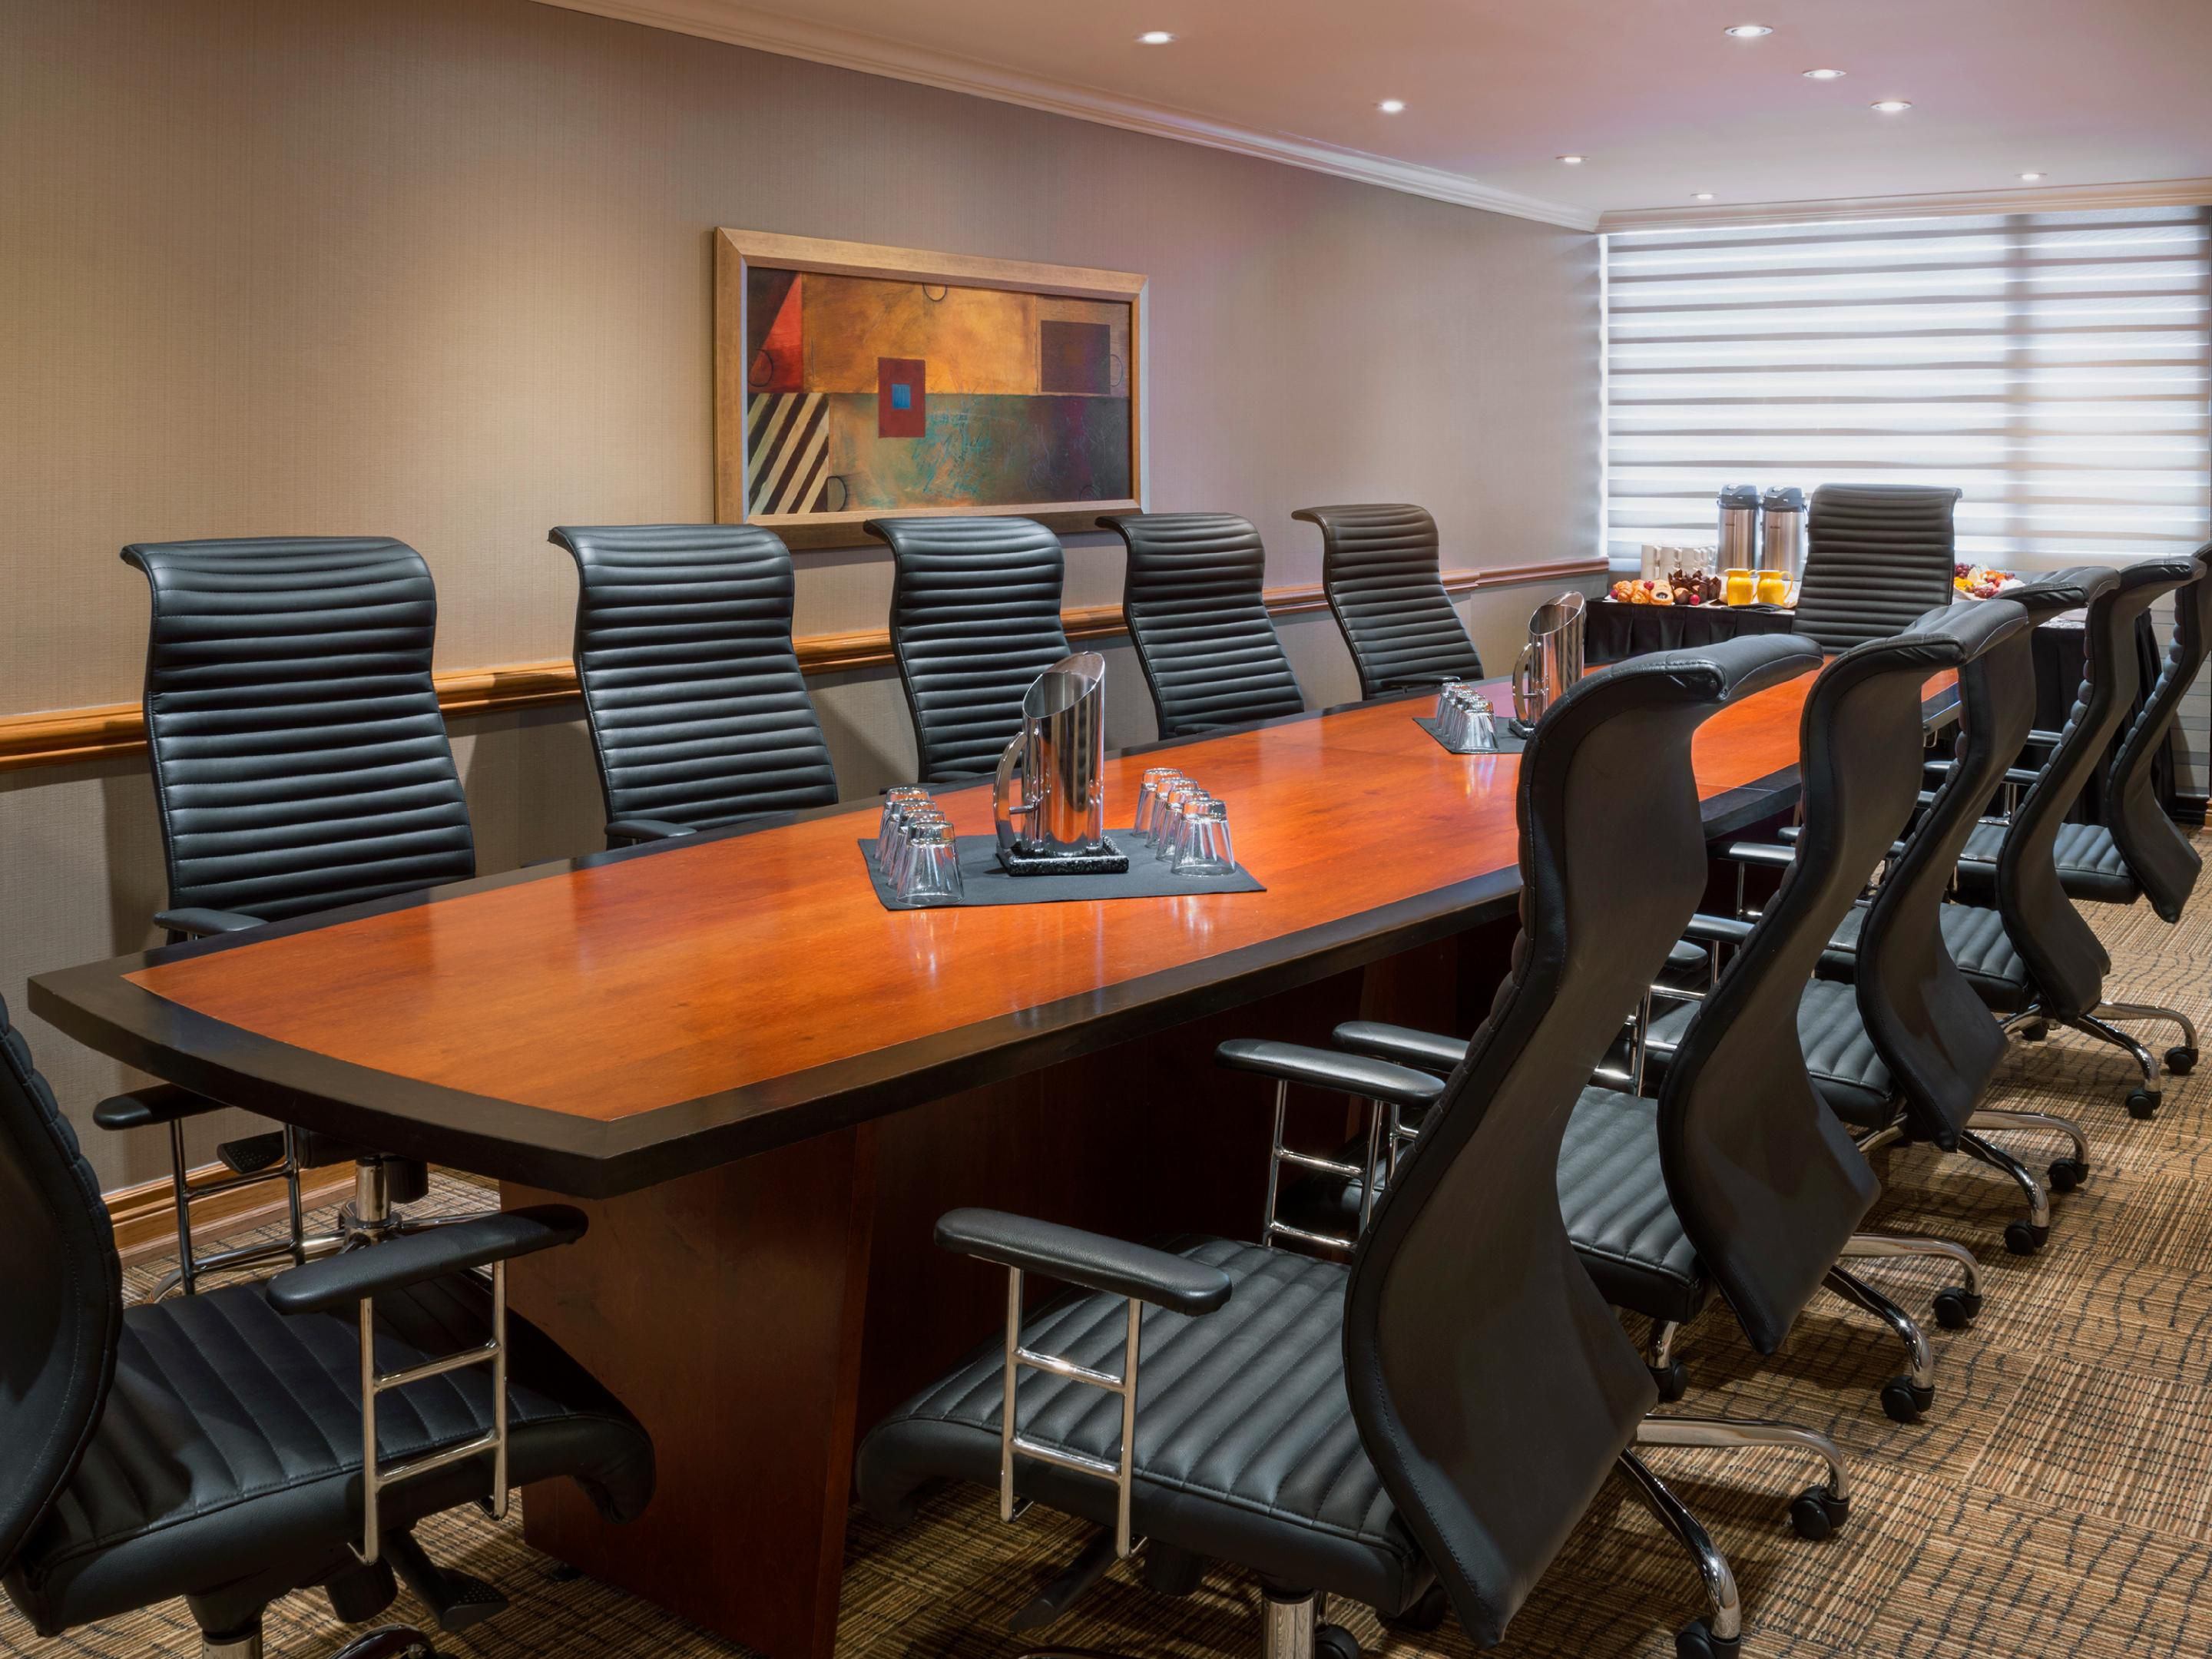 300 sq. ft. executive boardroom in Toronto with natural lighting